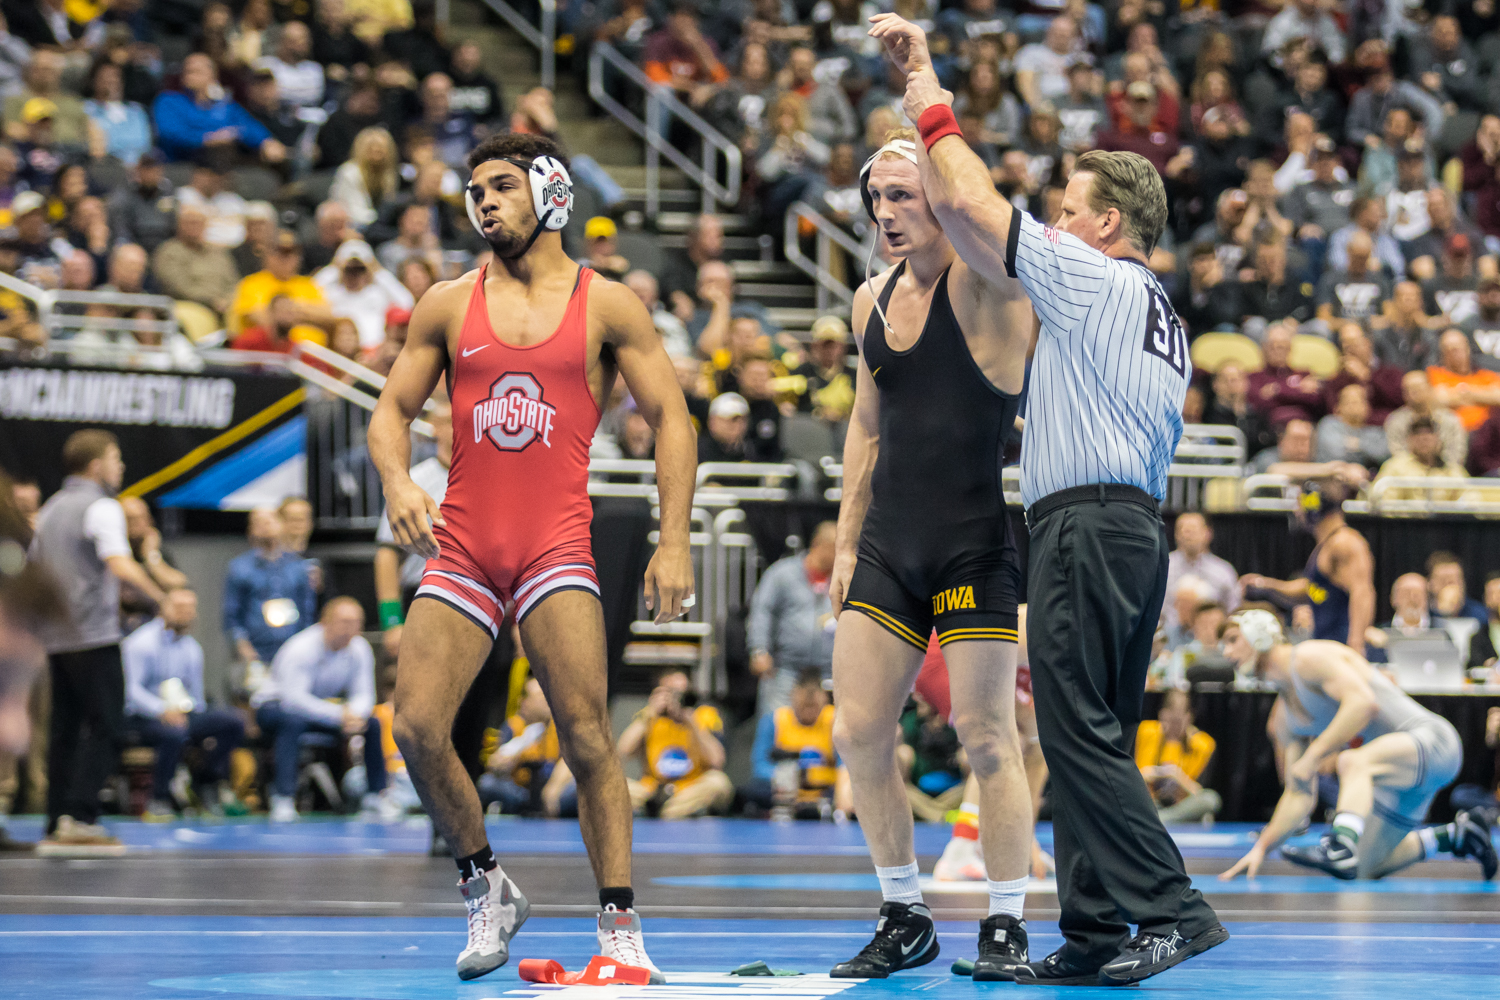 Iowa%E2%80%99s+157-pound+Kaleb+Young+defeats+Ohio+State%E2%80%99s+Ke-Shawn+Hayes+during+the+second+session+of+the+2019+NCAA+D1+Wrestling+Championships+at+PPG+Paints+Arena+in+Pittsburgh%2C+PA+on+Thursday%2C+March+21%2C+2019.+Young+won+by+major+decision%2C+14-2.